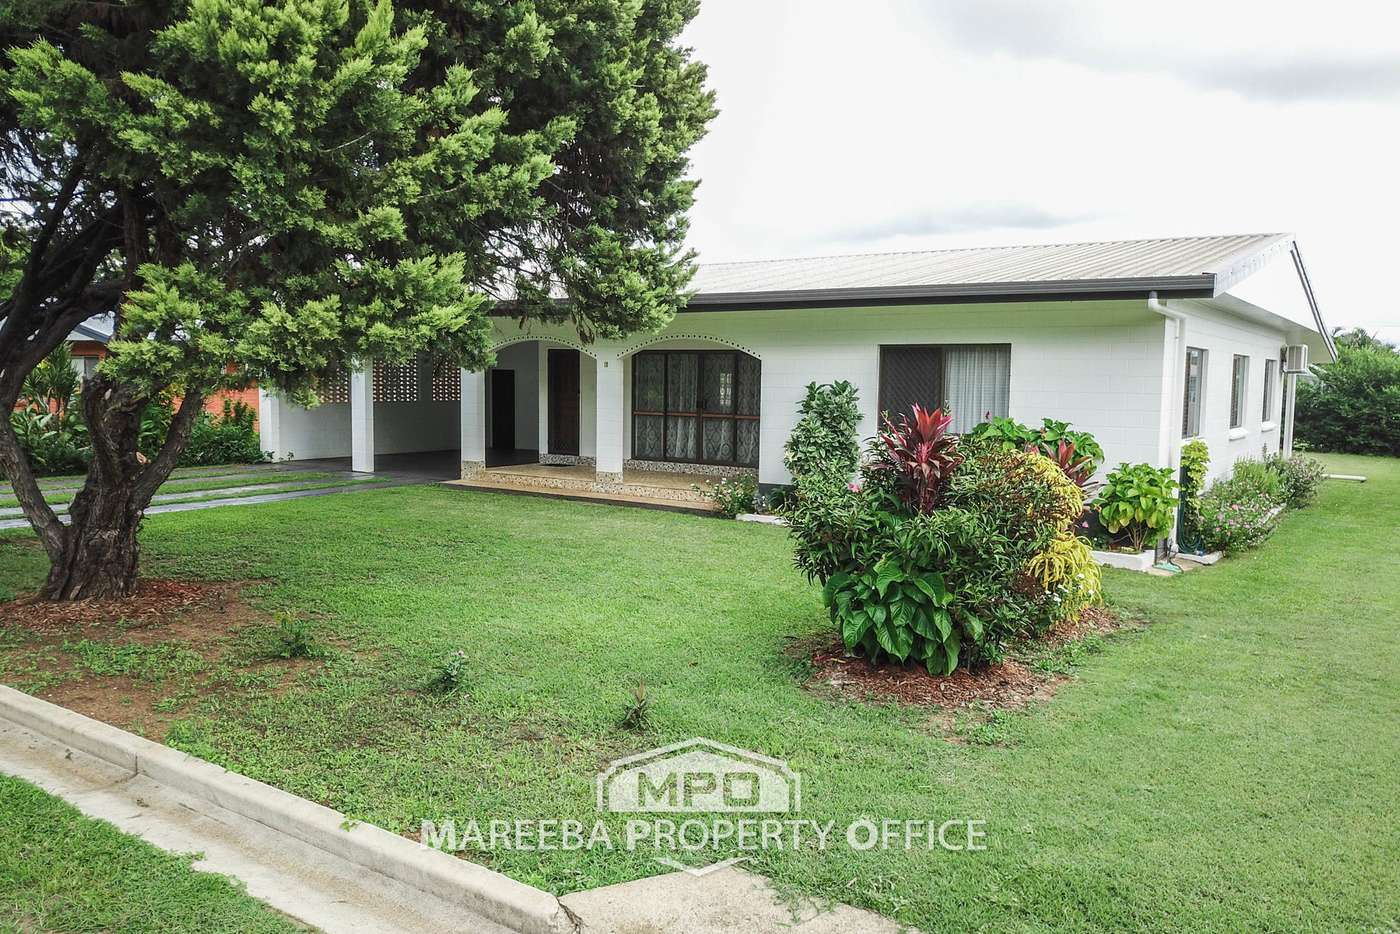 Main view of Homely house listing, 13 Haren Street, Mareeba QLD 4880